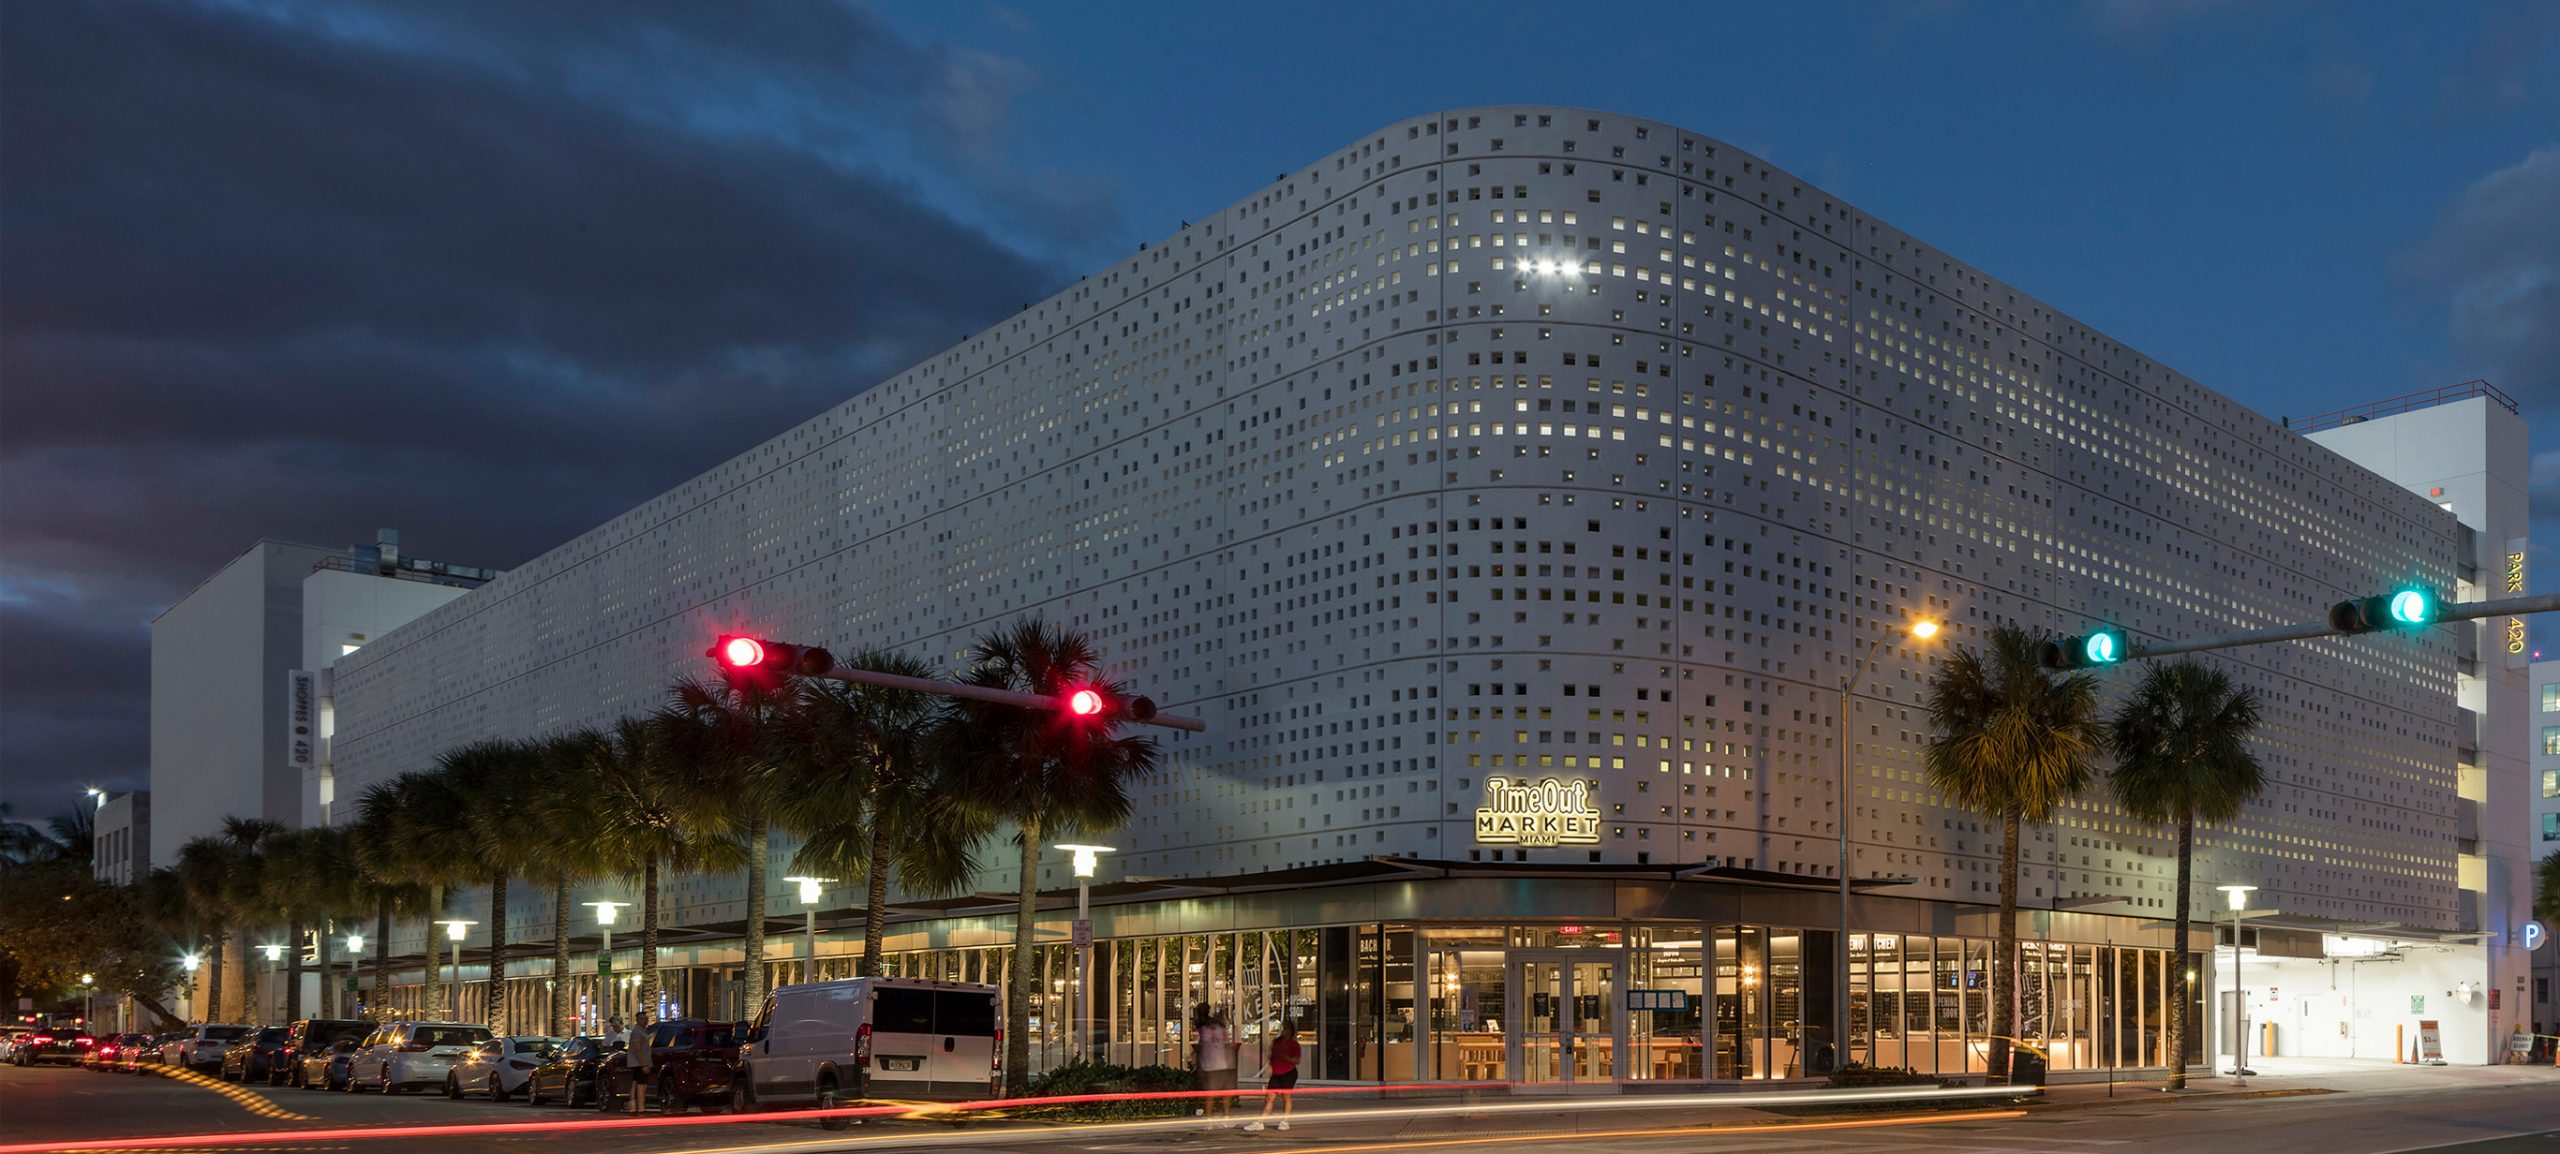 Time Out Market Miami building lit up at night